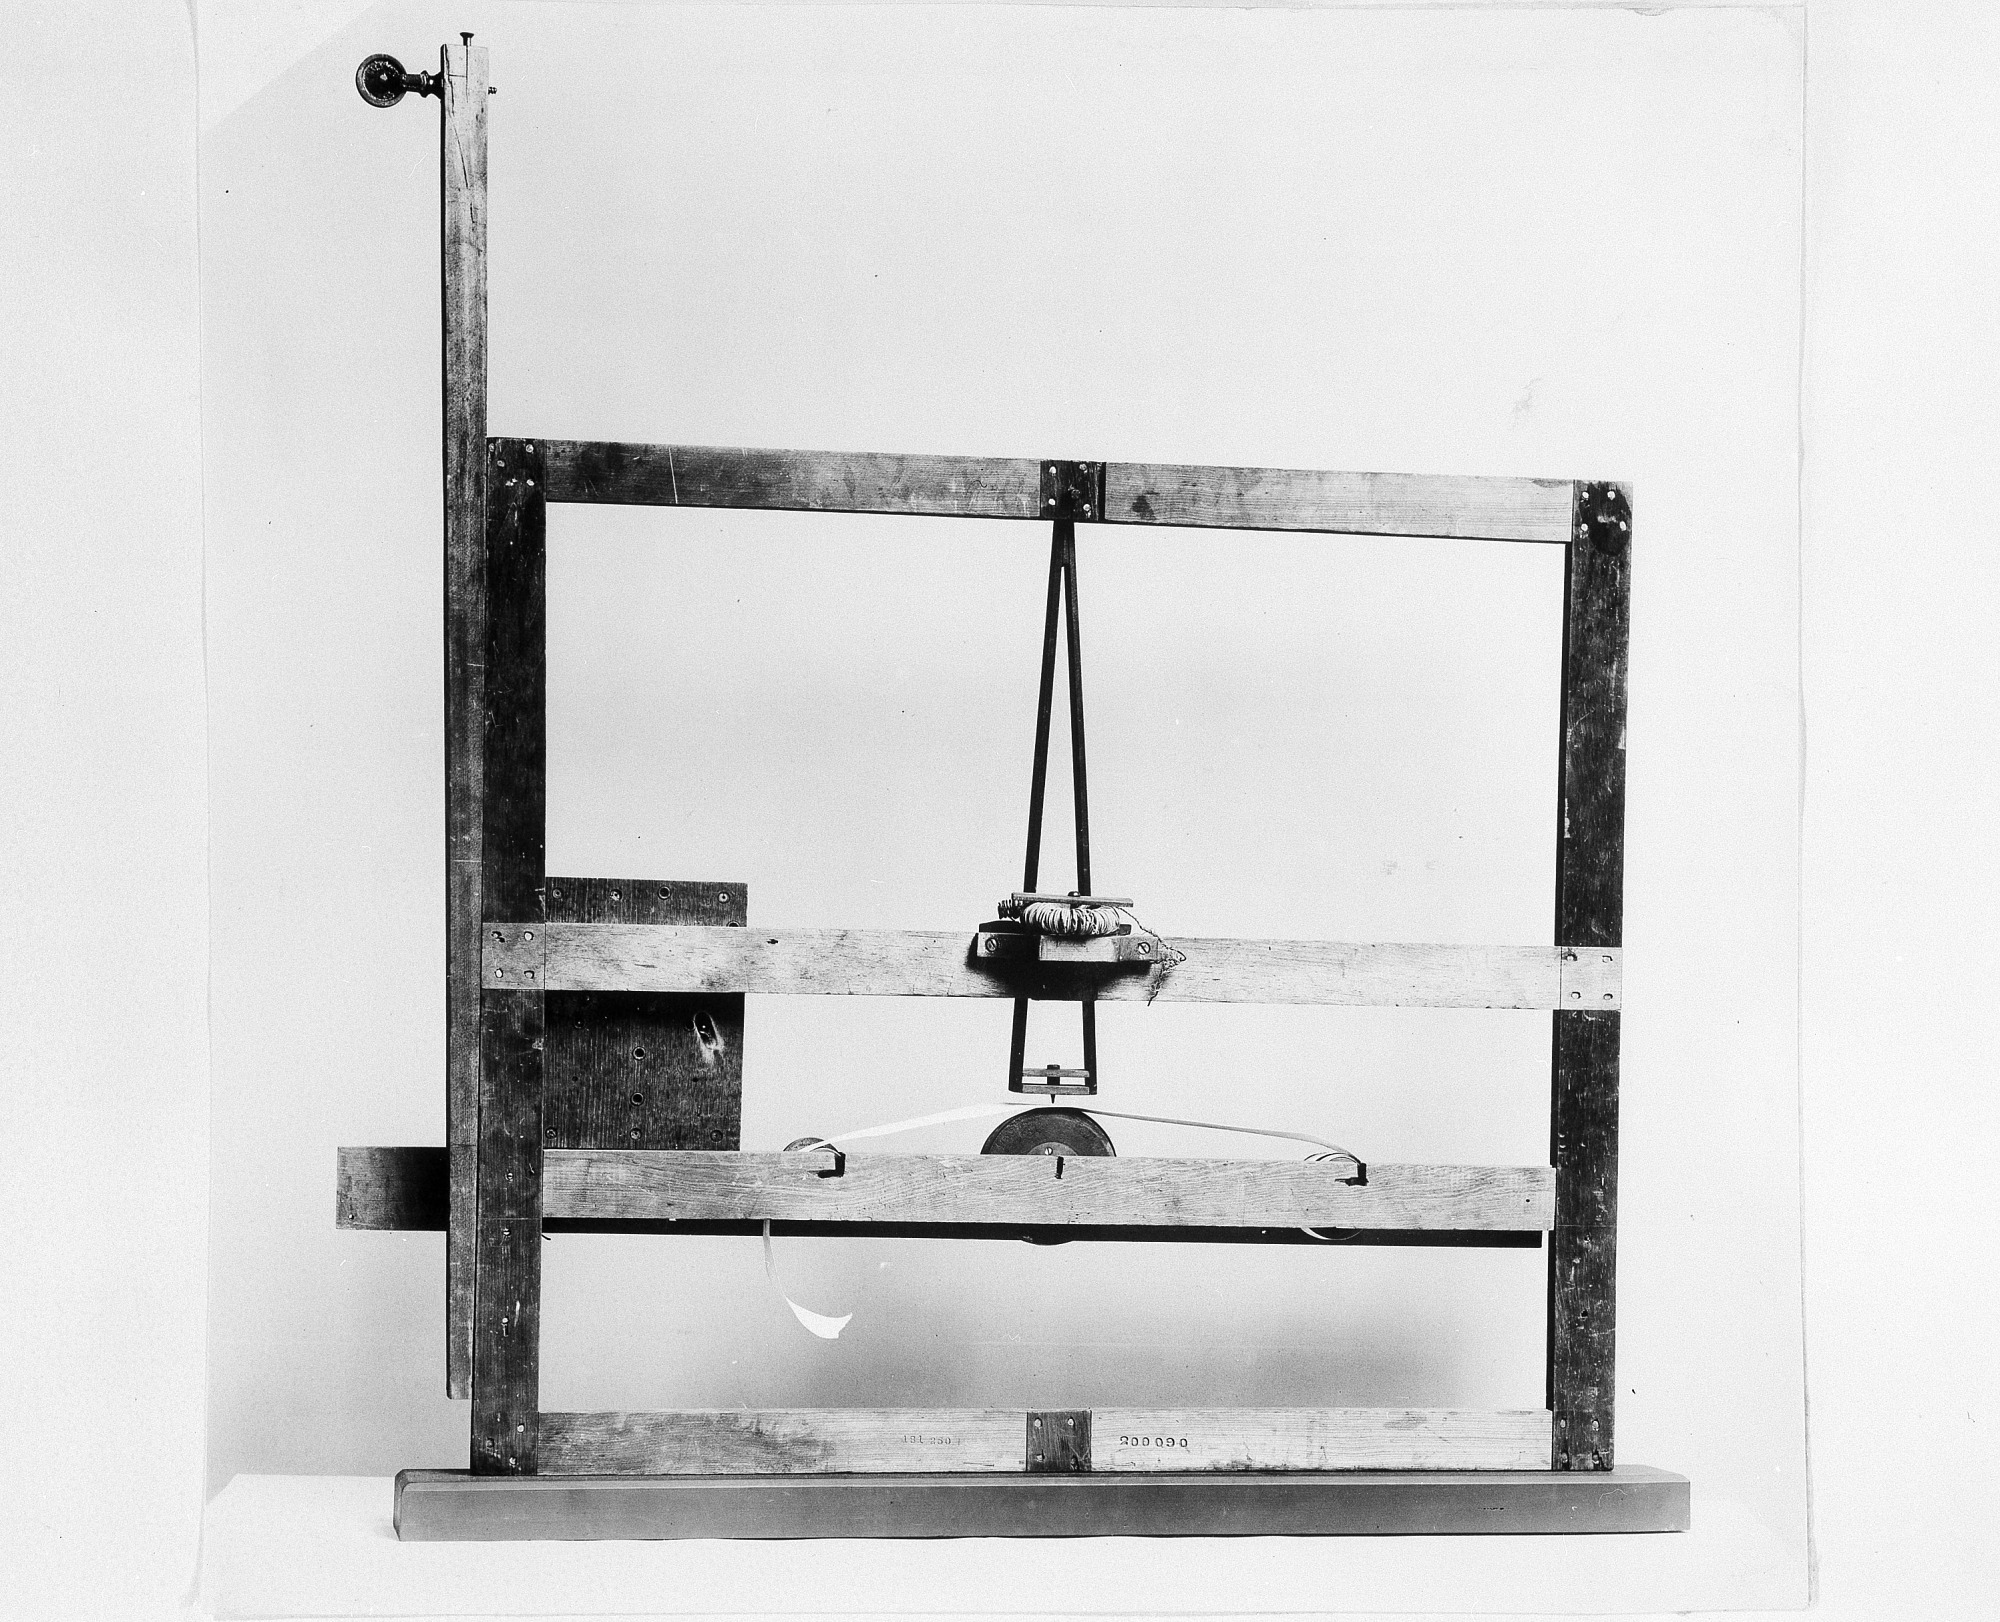 Image is of Samuel Morse's Experimental Telegraph from 1837. With this instrument Morse first demonstrated the receiving of electro-magnetic telegraphic messages. Smithsonian Institution Archives, negative number 91-3689.